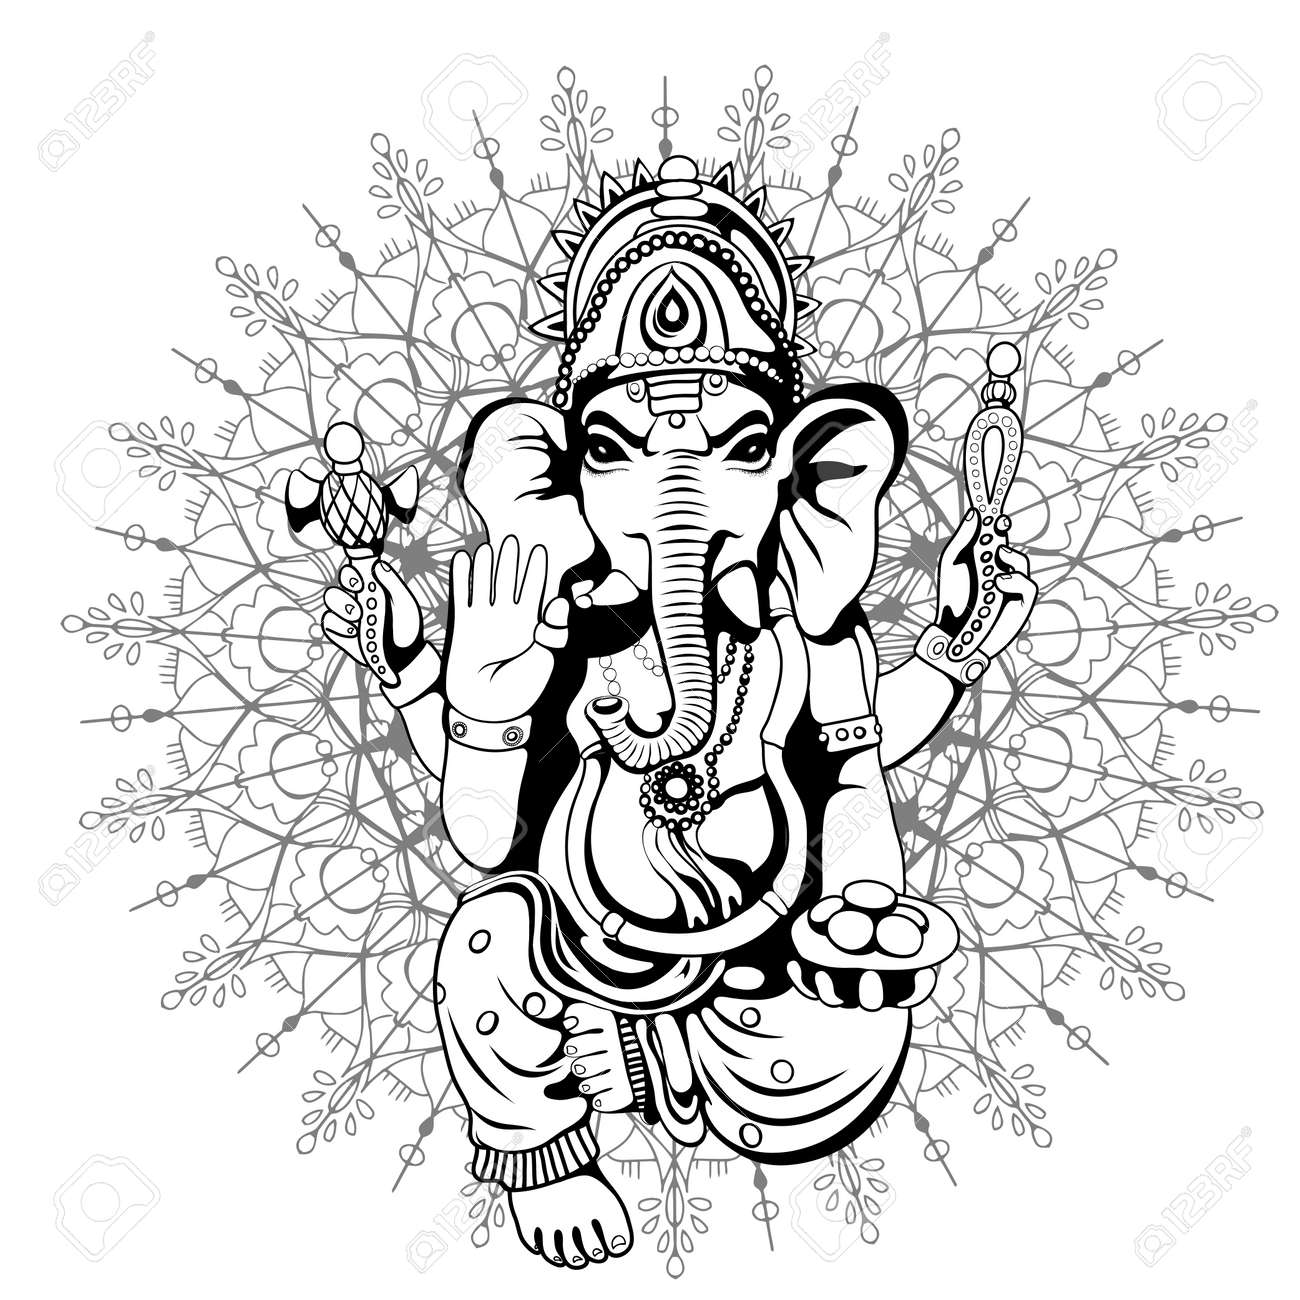 Lord ganesha sketch on a background stock vector 70882733